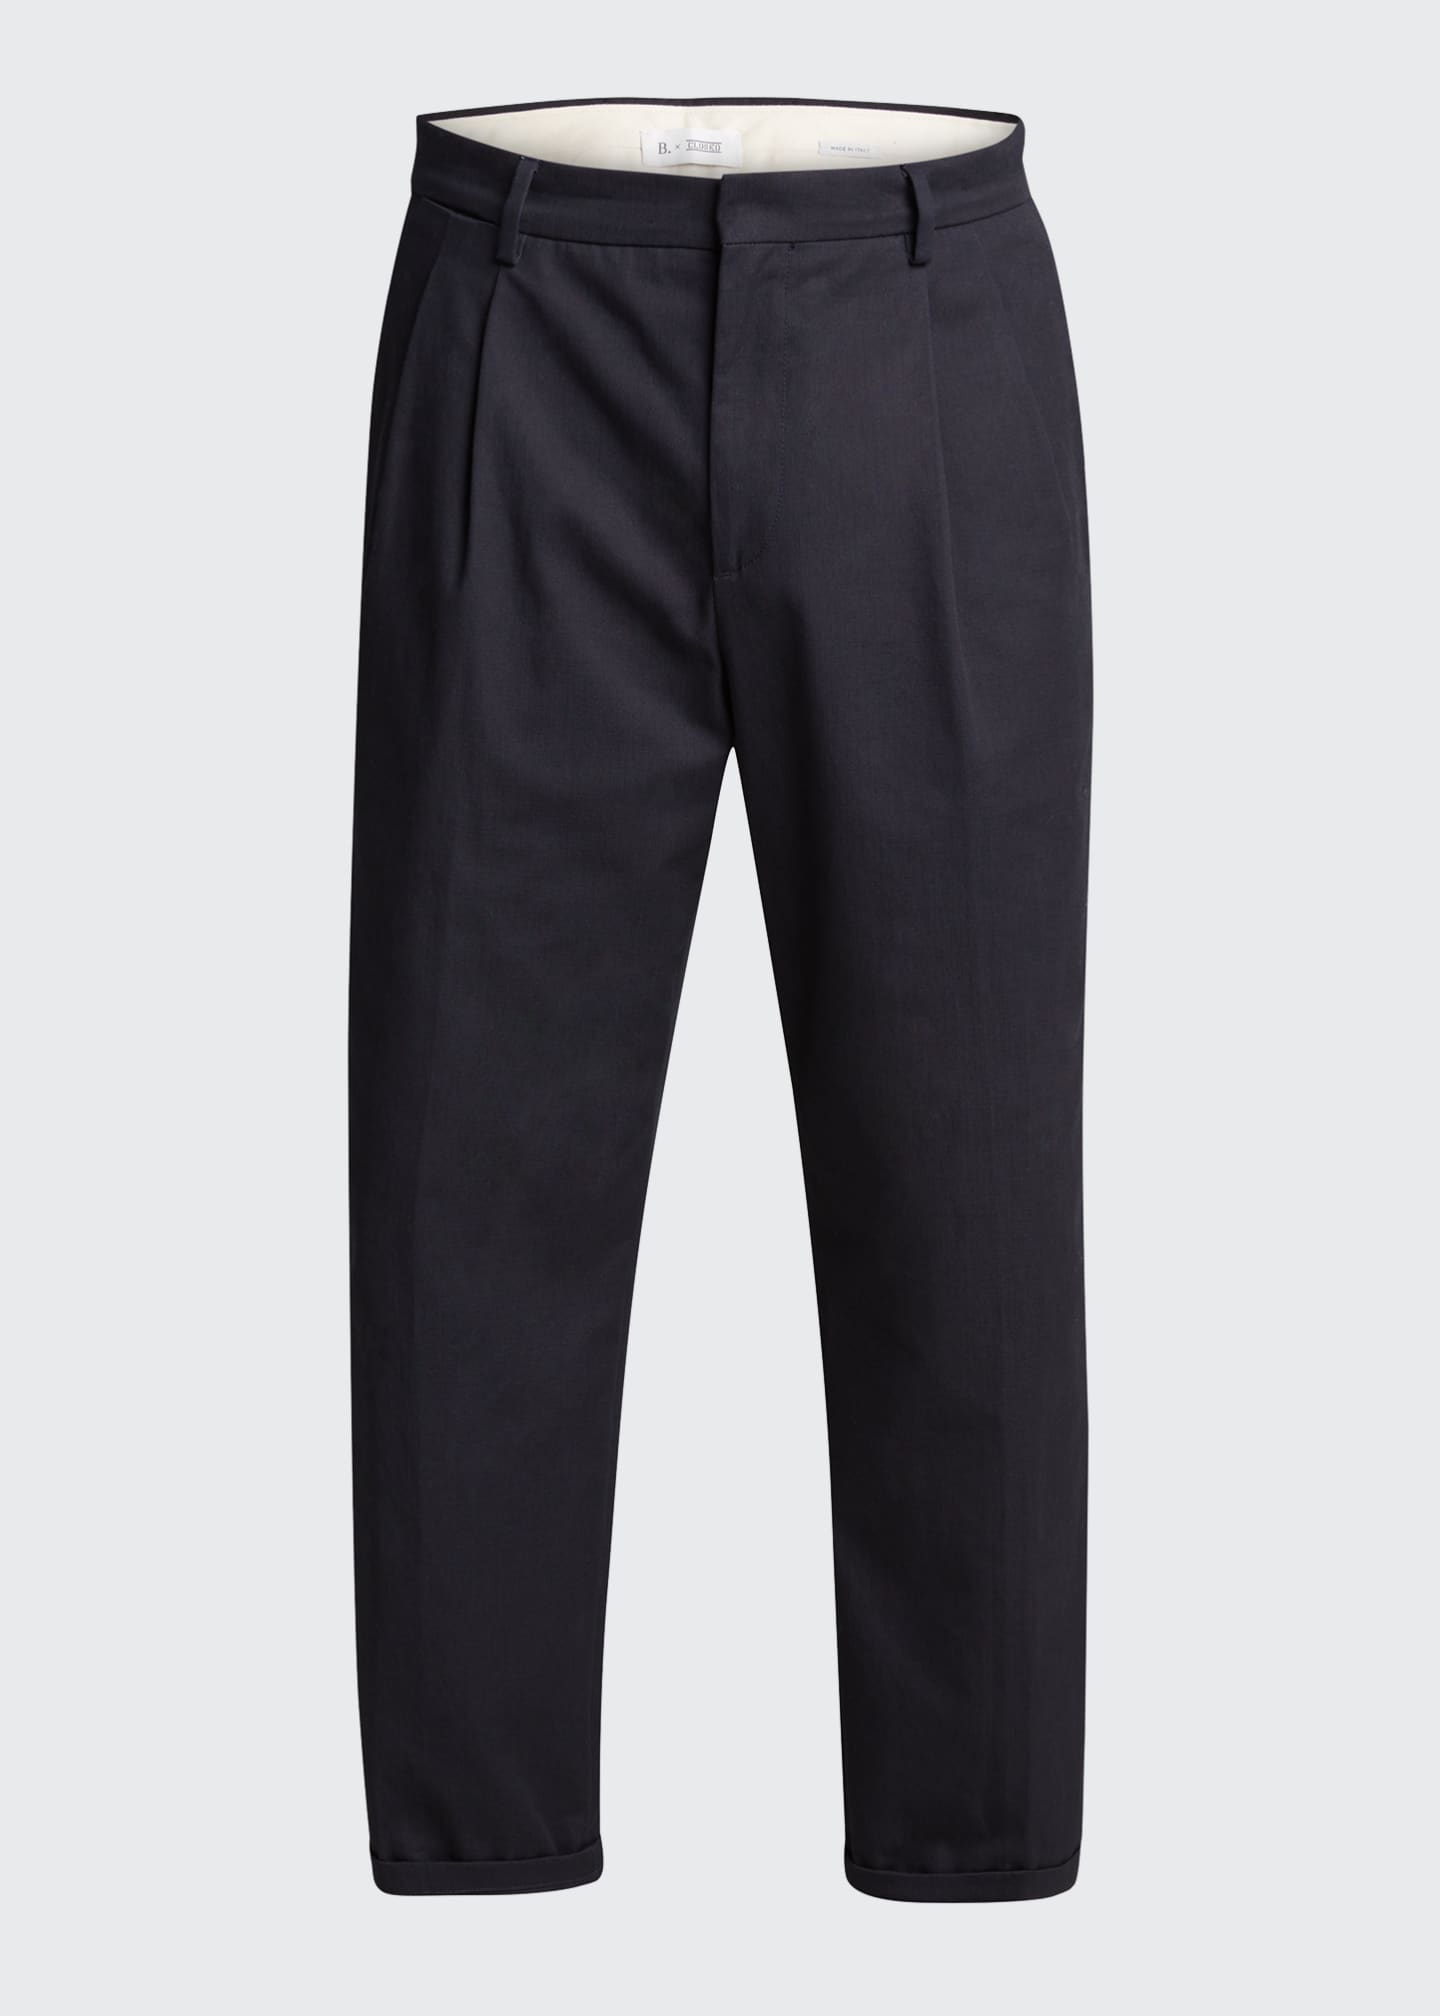 Image 5 of 5: Men's Pleated Straight-Leg Crop Trousers